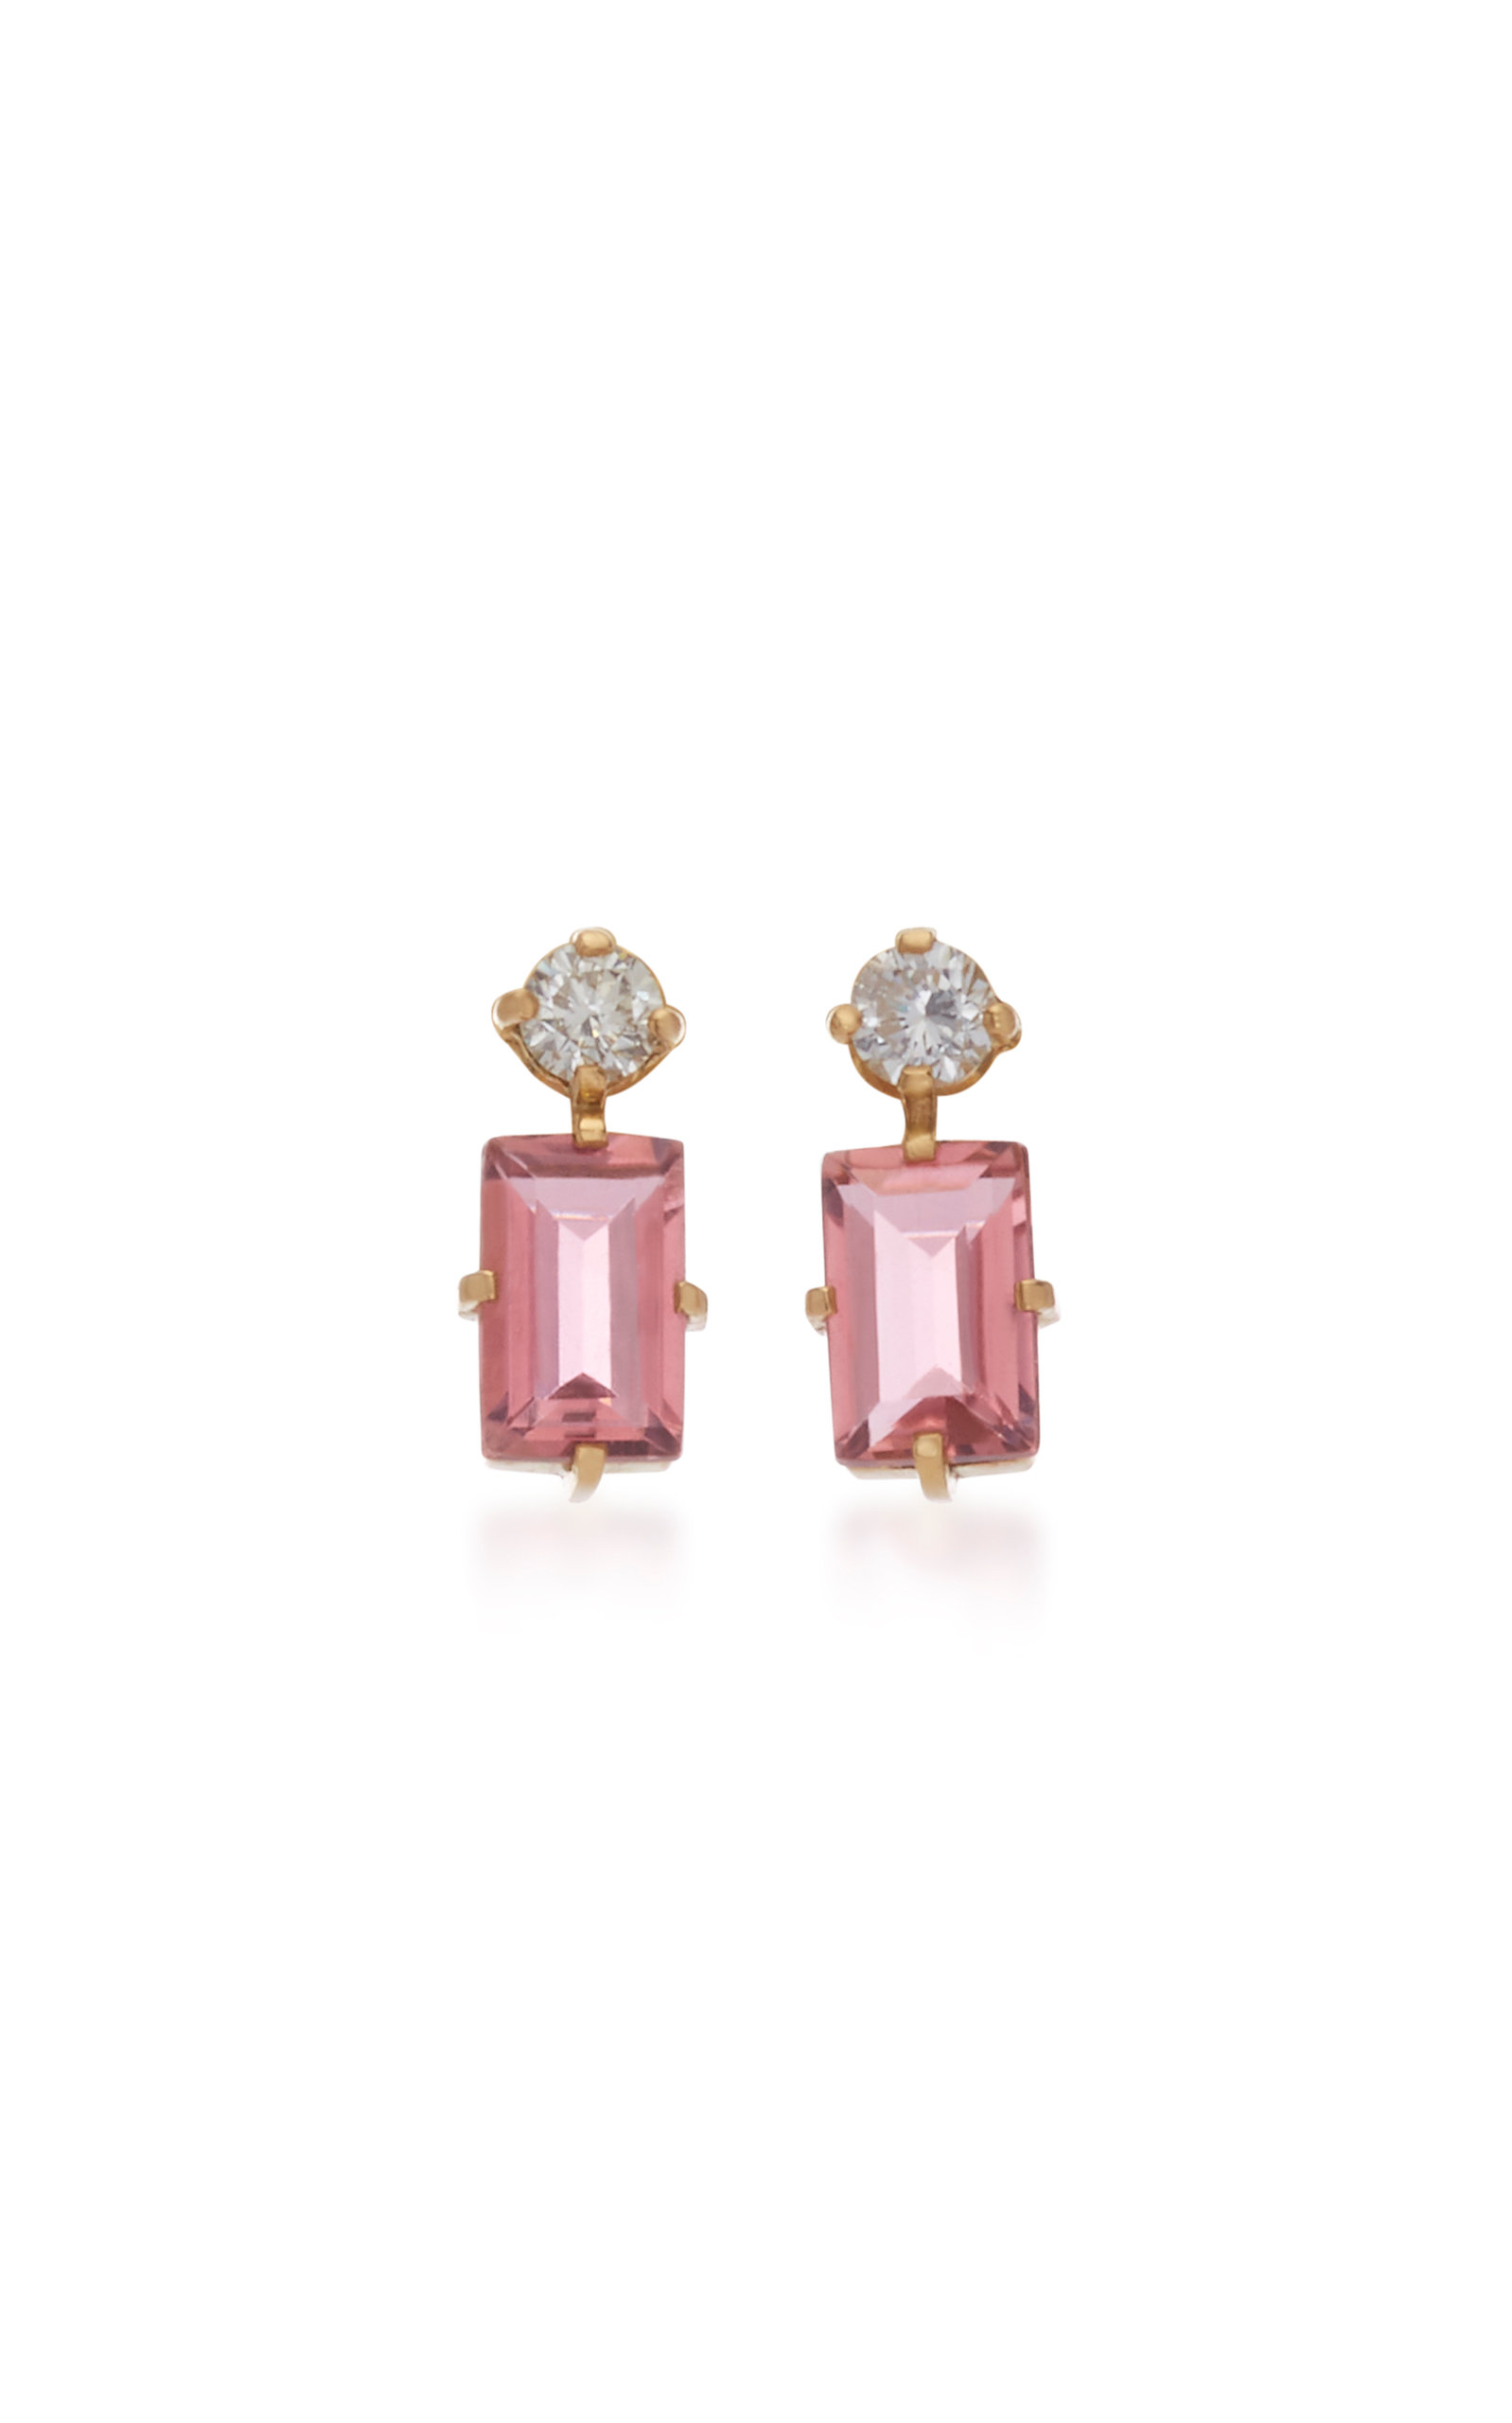 YI COLLECTION 18K Gold Pink Tourmaline And Diamond Earrings